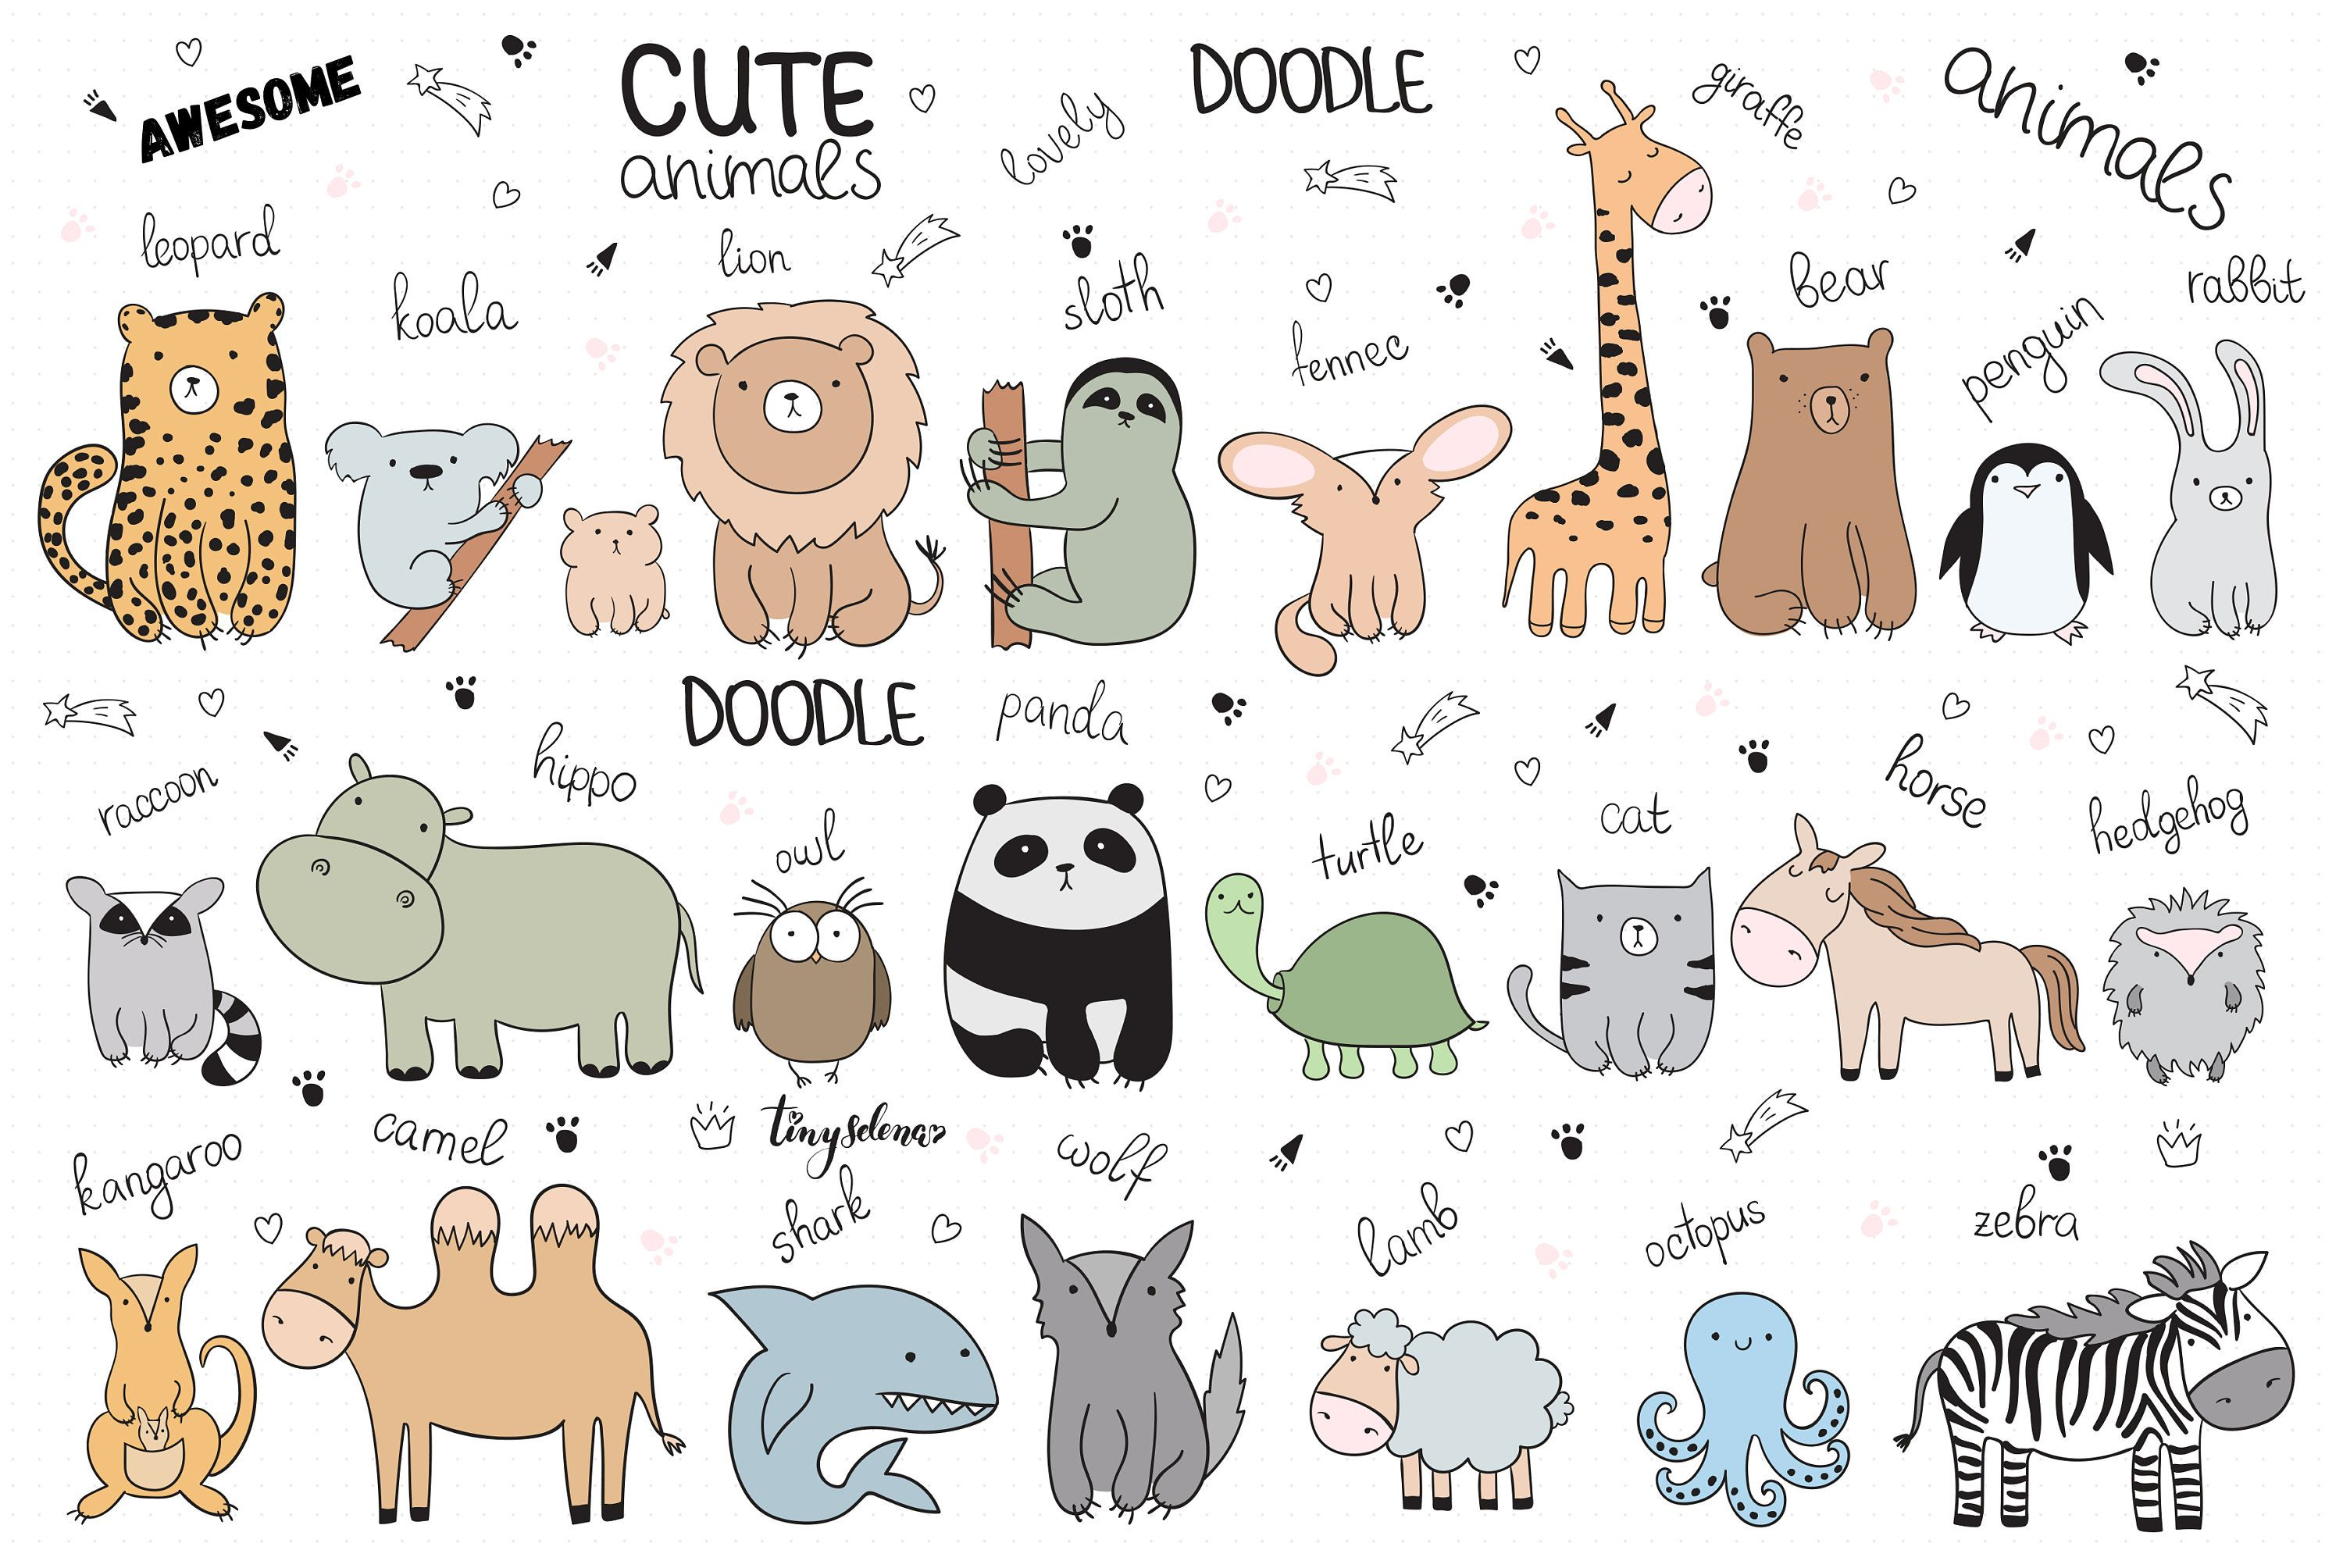 Baby Cute Animals Svg Line Art Svg Zoo Clipart Woodland Etsy In 2021 Baby Animal Drawings Animal Line Drawings Animal Doodles